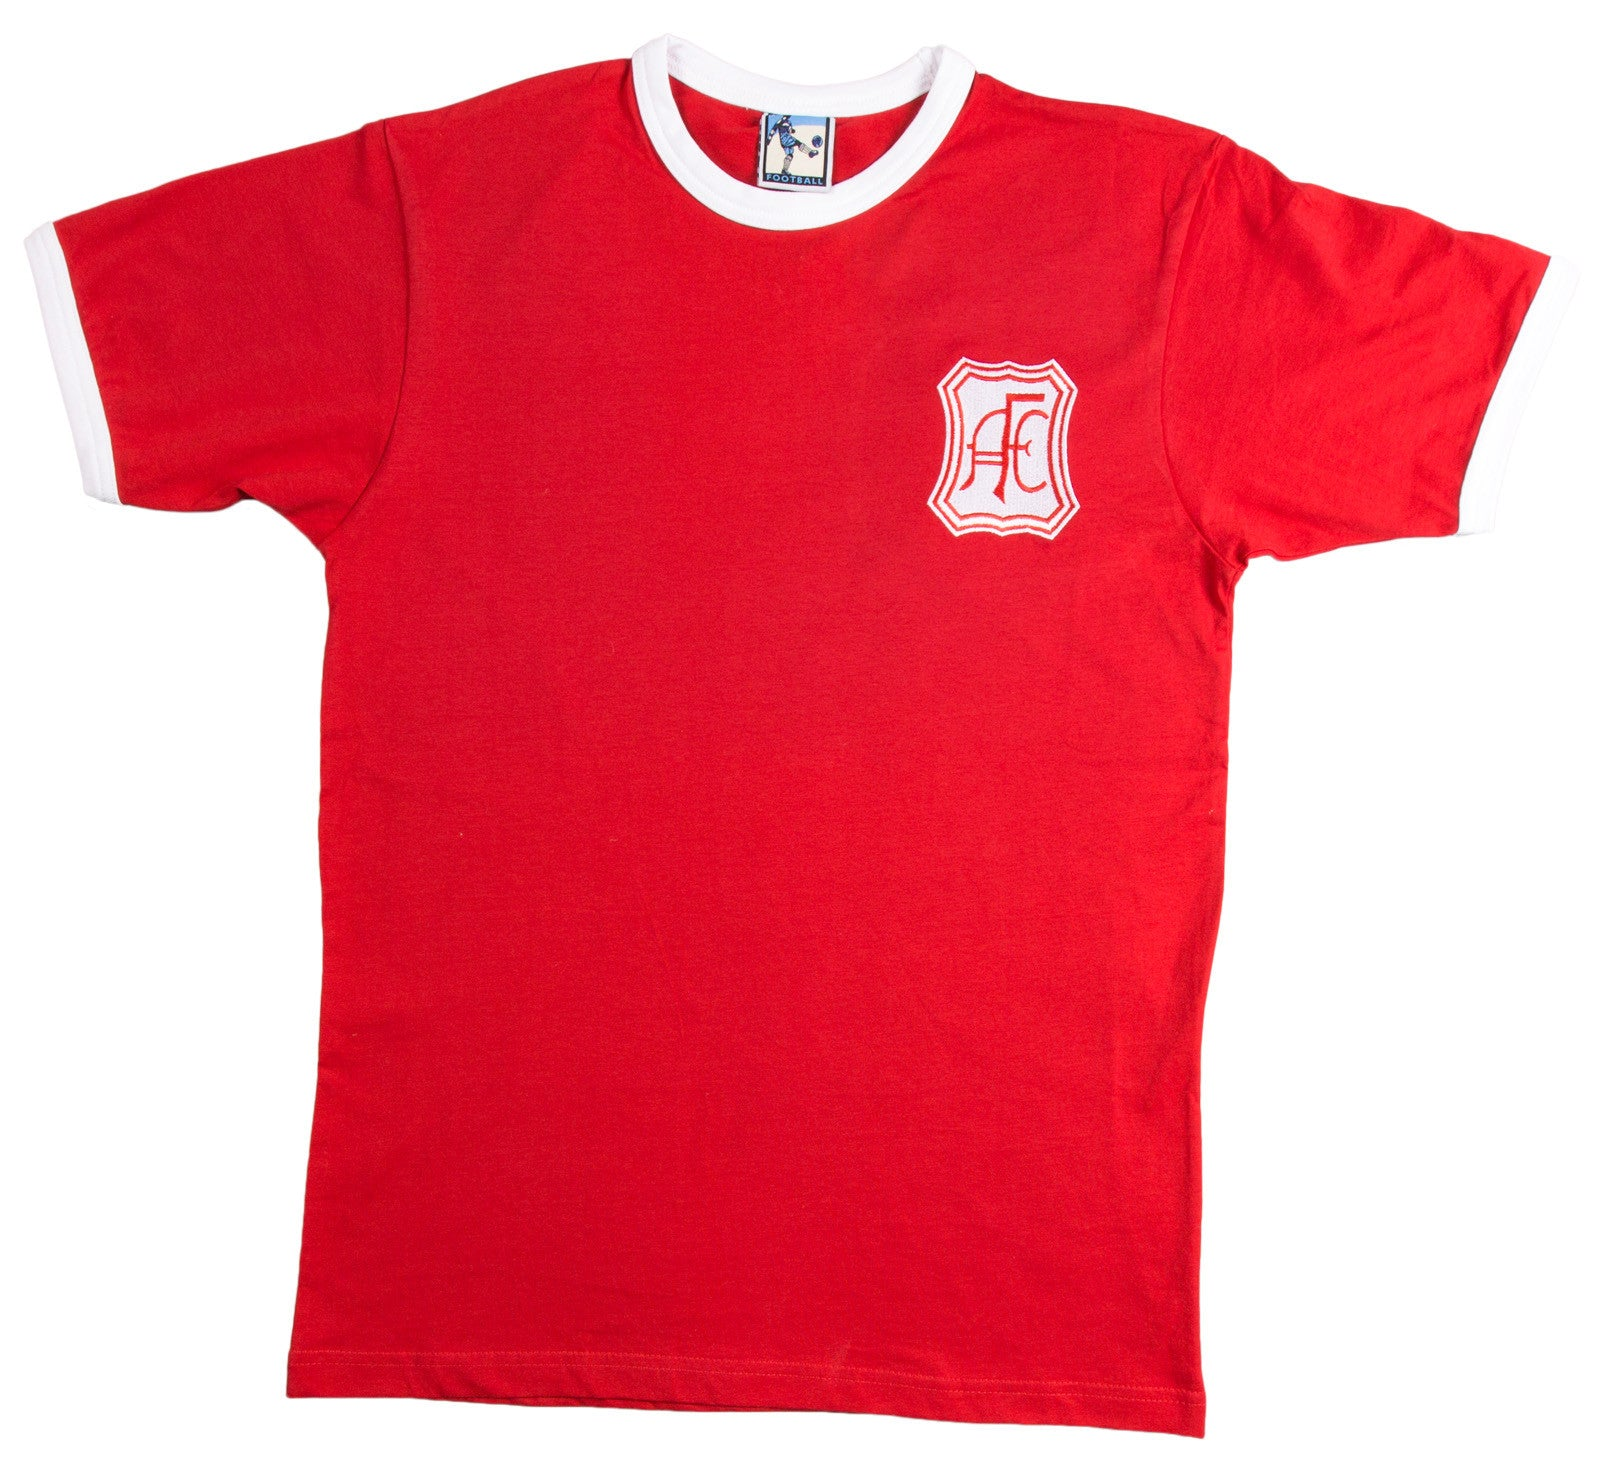 Aberdeen 1963 - 1965 T-Shirt - Old School Football